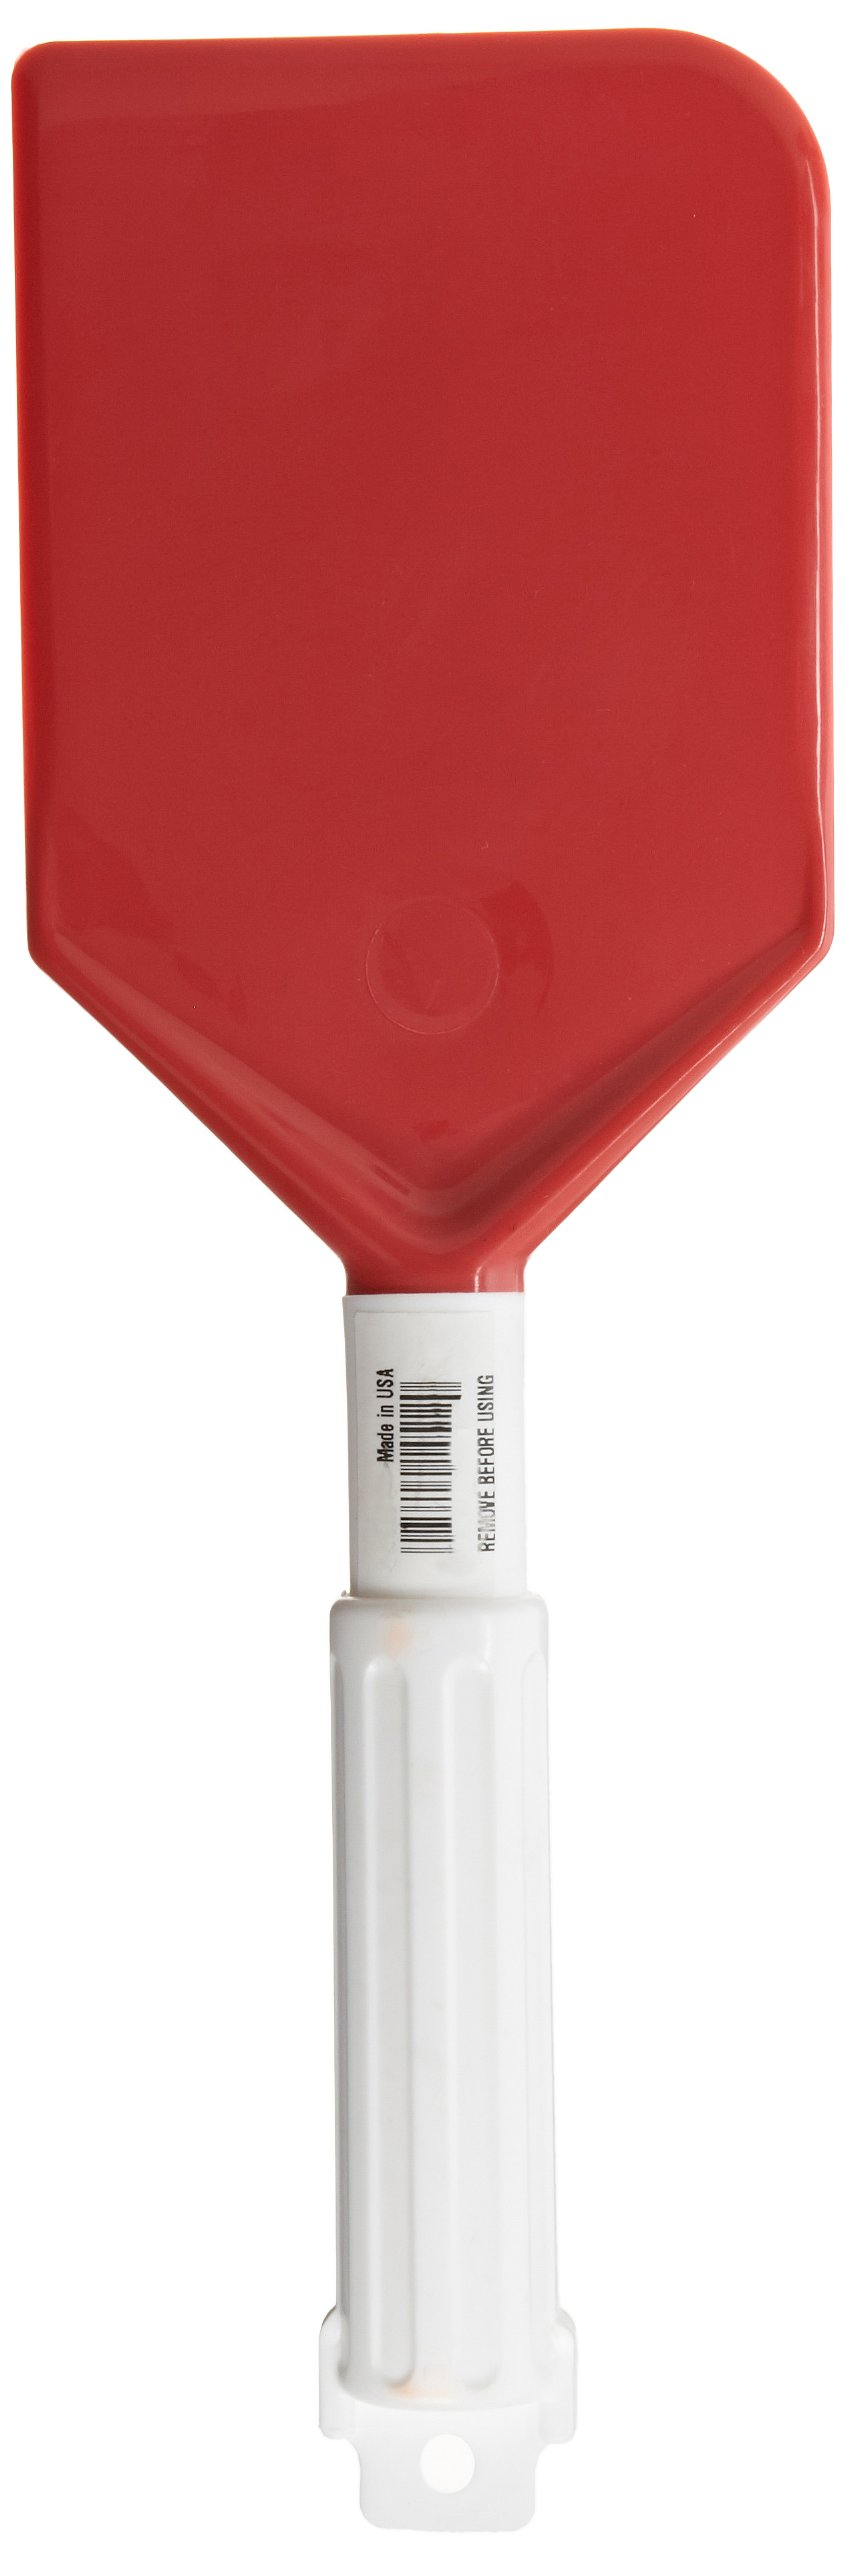 Carlisle 4035005 Red 13-1/2-Inch Sparta Spatula with Plastic Handle (Case of 6)